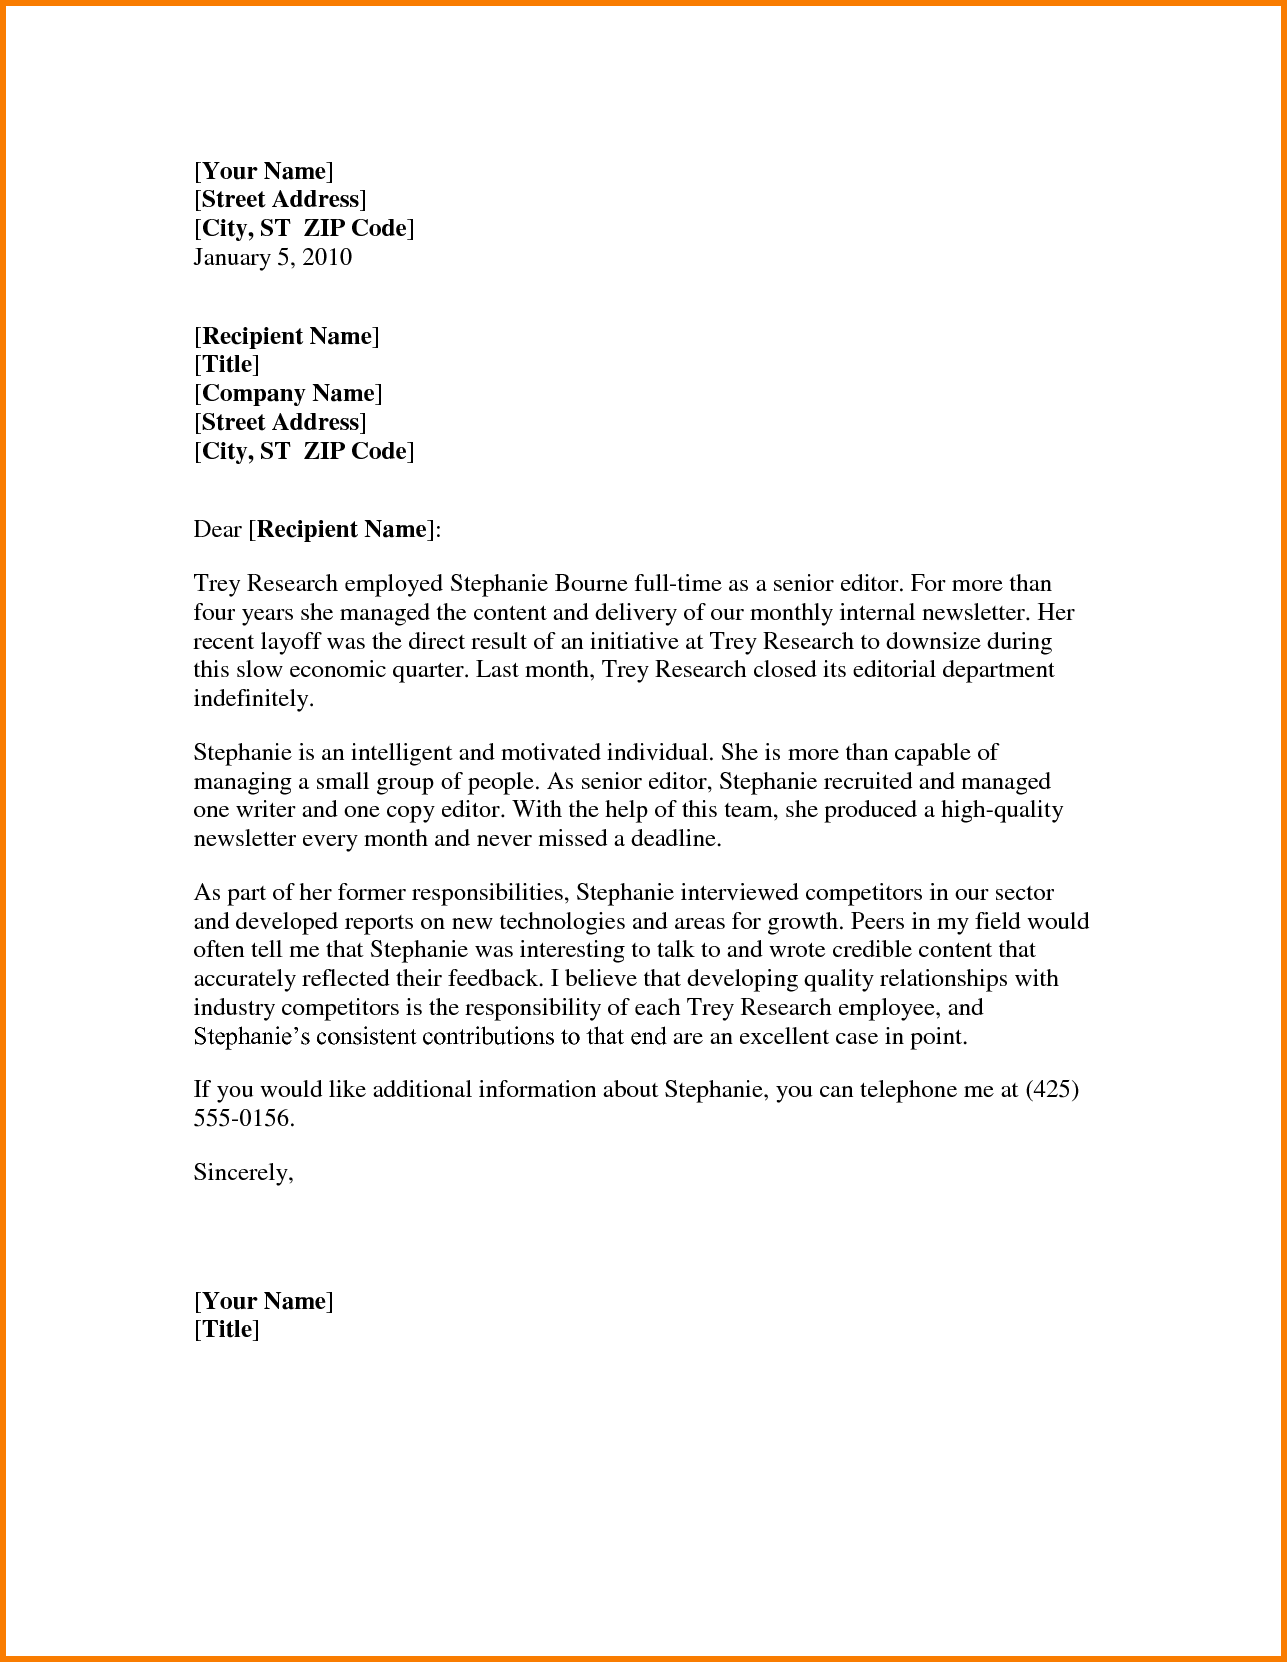 letter of recommendation template word Melo.in tandem.co